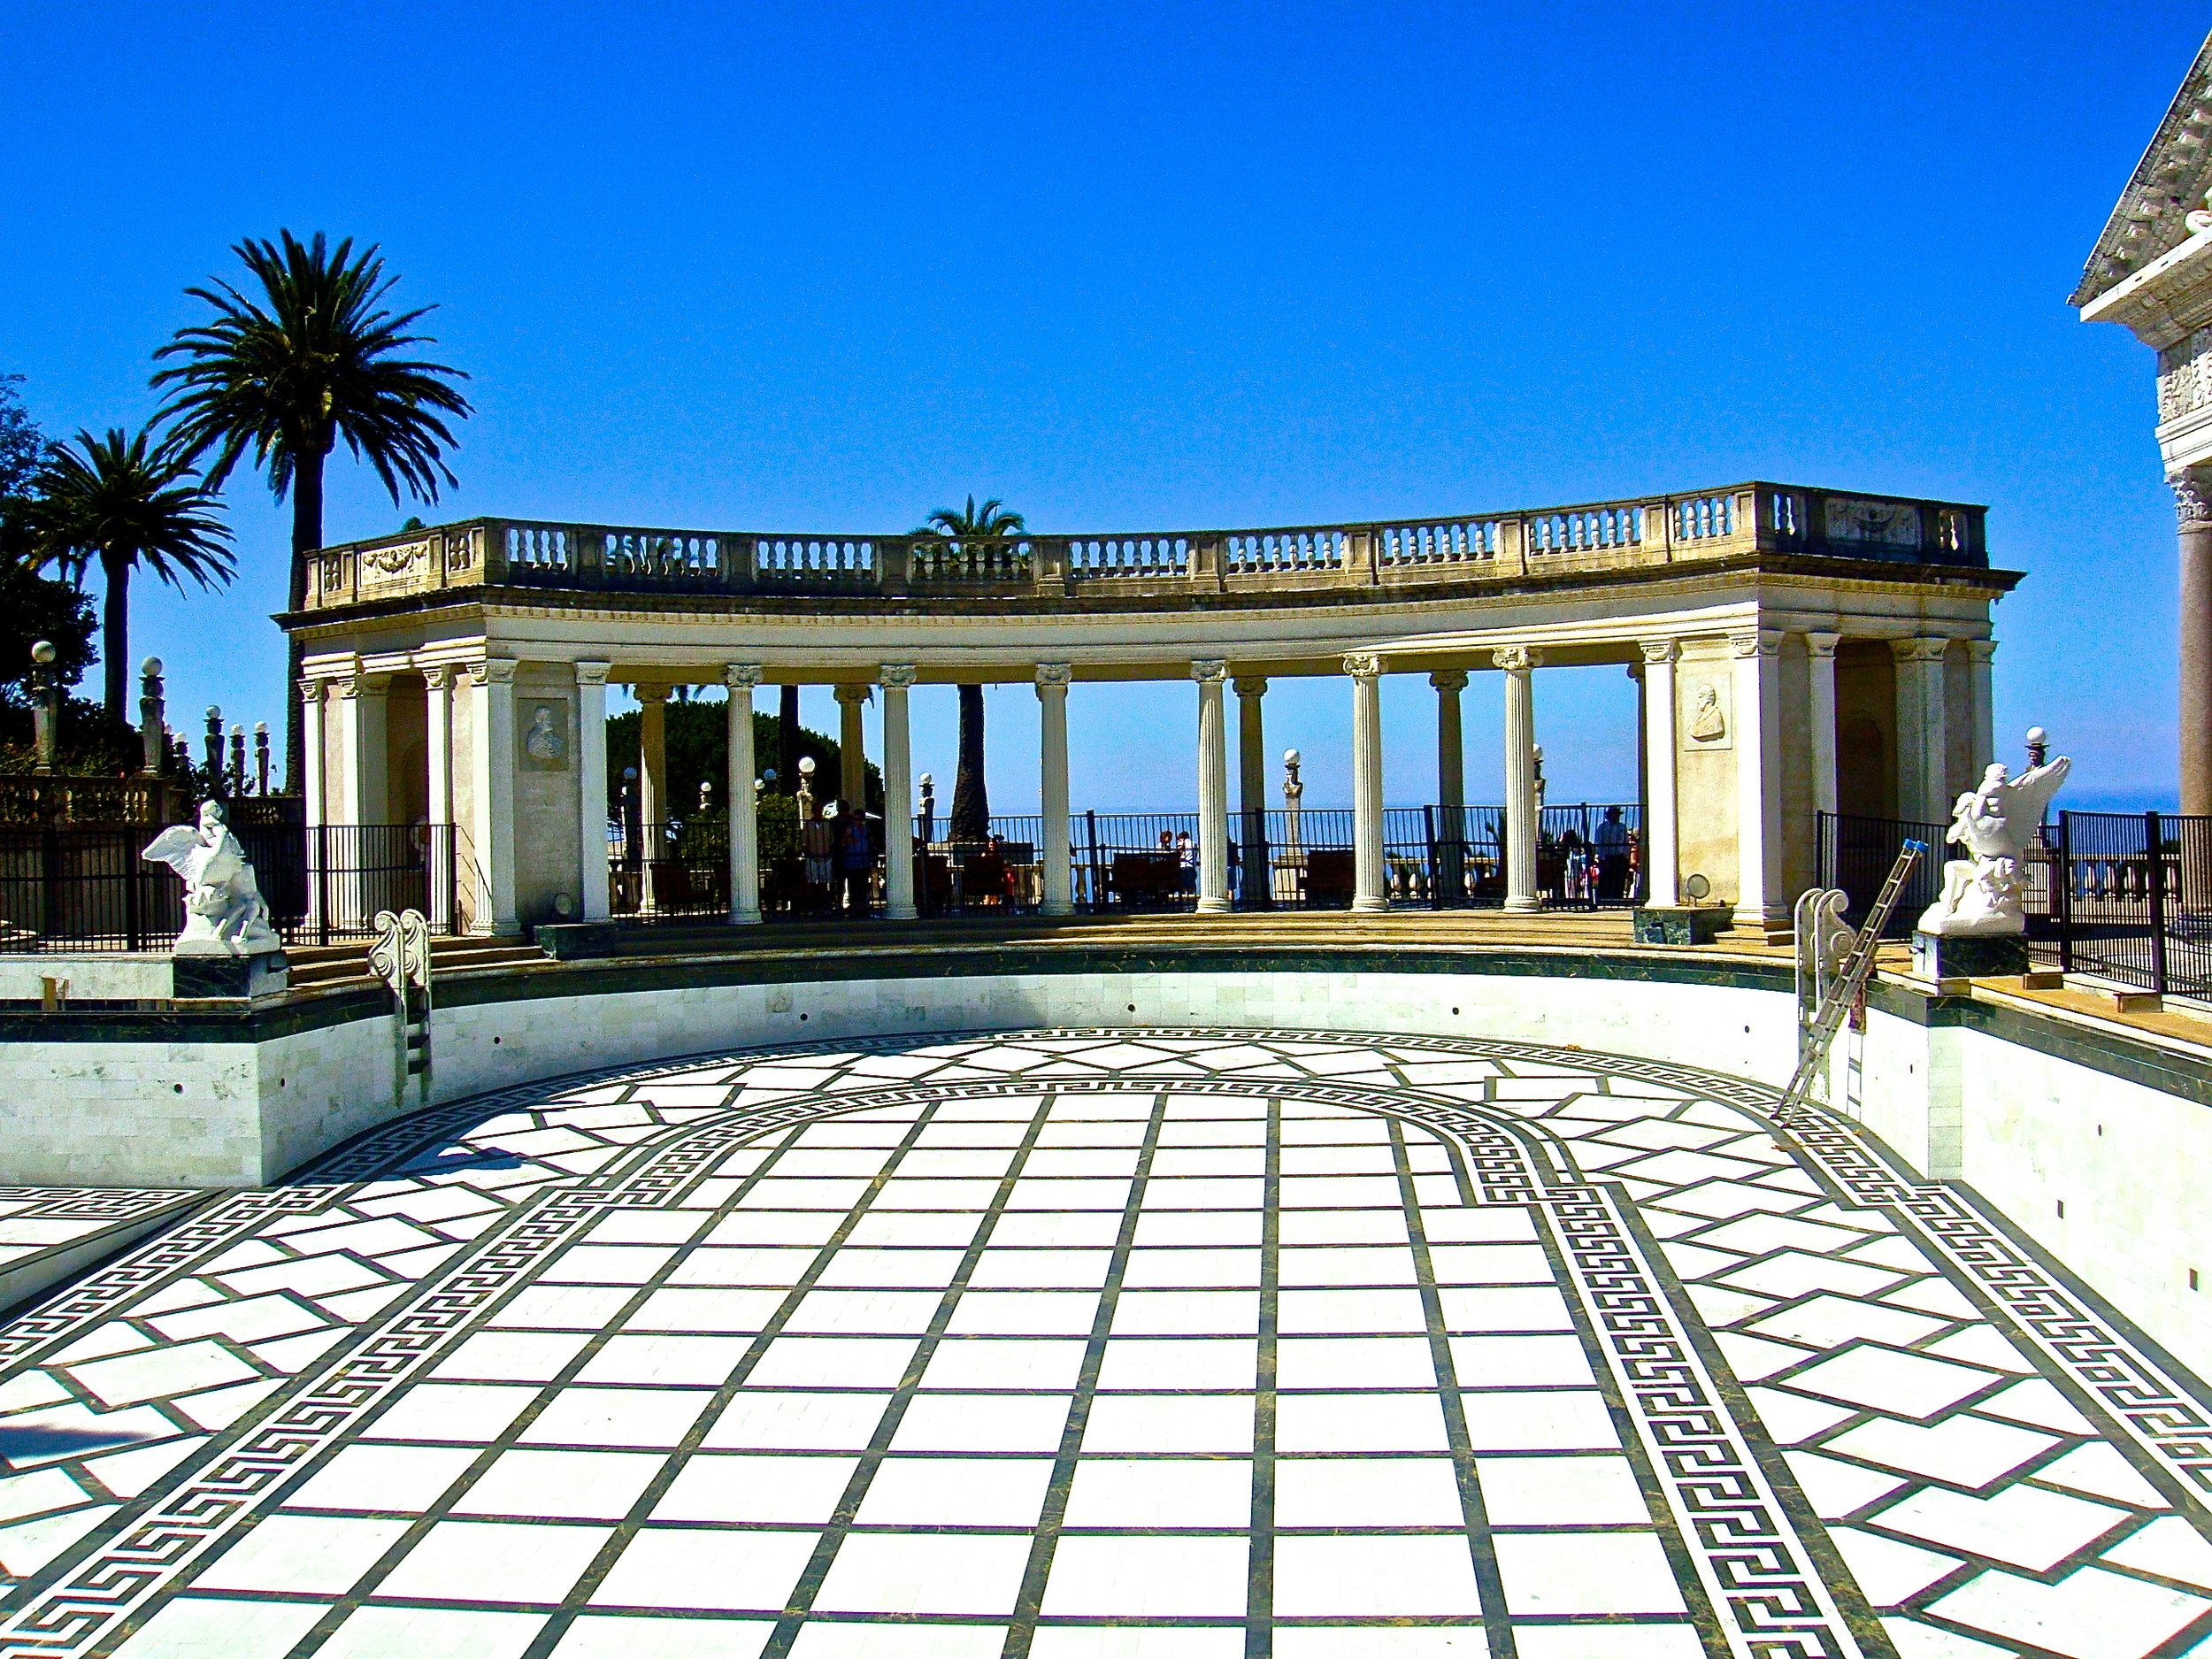 The west end of the Hearst Castle Neptune Pool with the Pacific Ocean in the background.